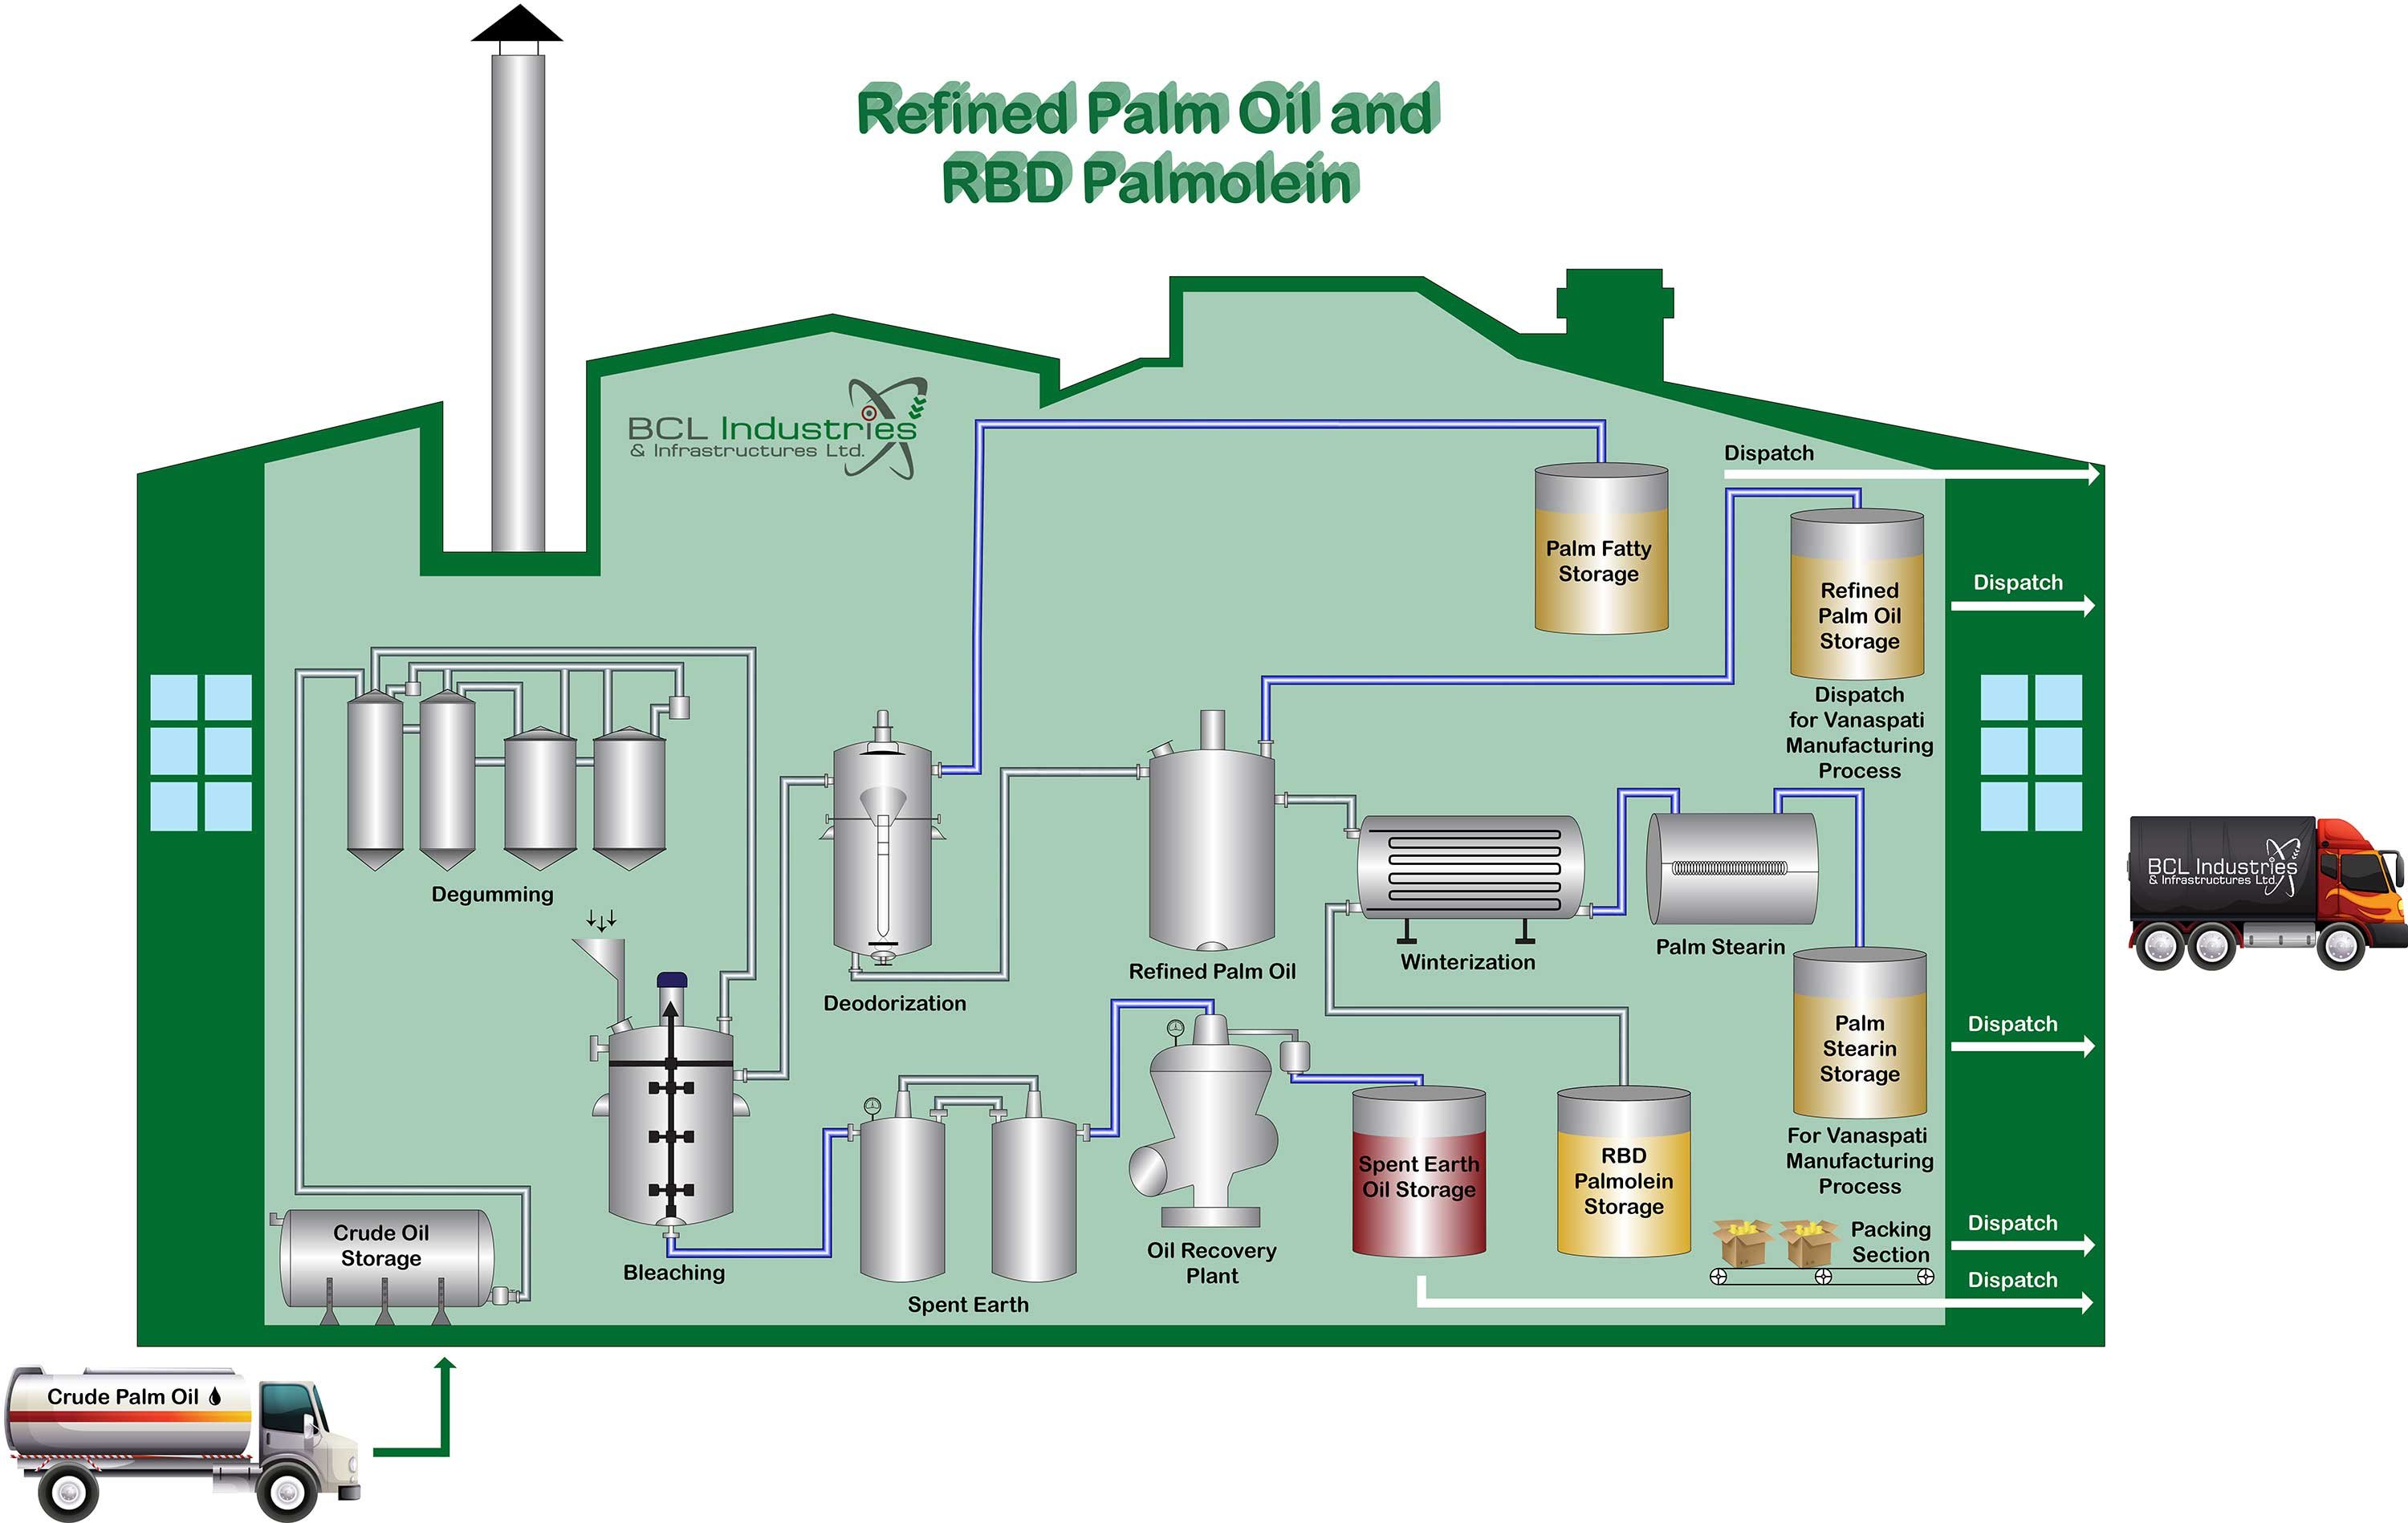 Physical Refinery to Process CPO     BCL Industries   Infrastructure Limited